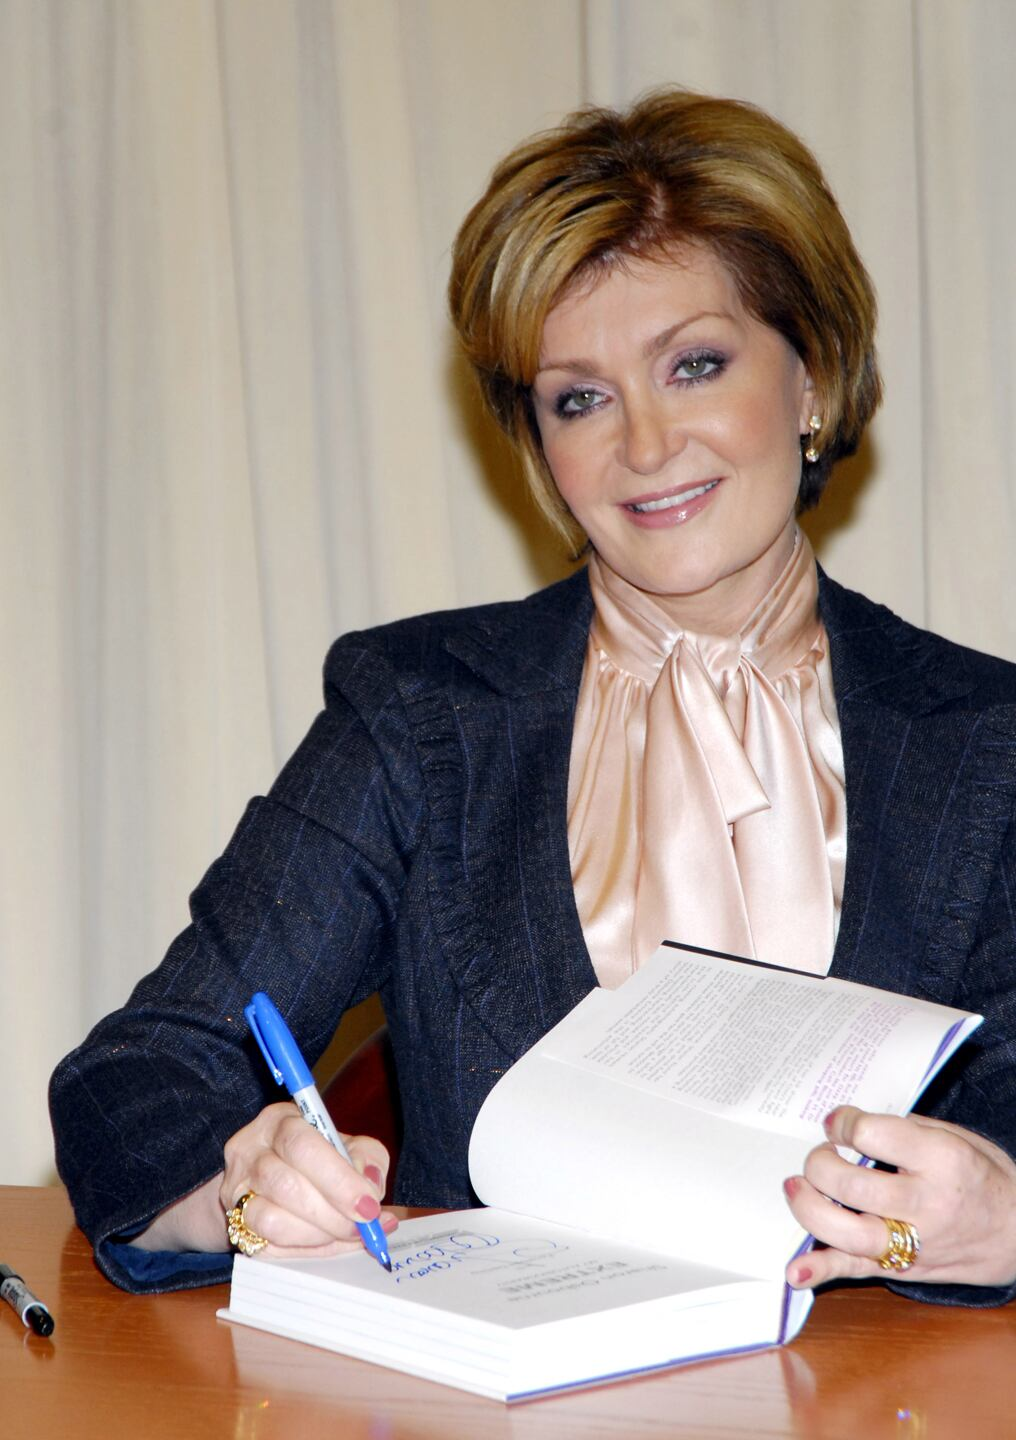 "Sharon Osbourne Signs Her New Autobiography ""Sharon Osbourne Extreme"" - October 25, 2006"